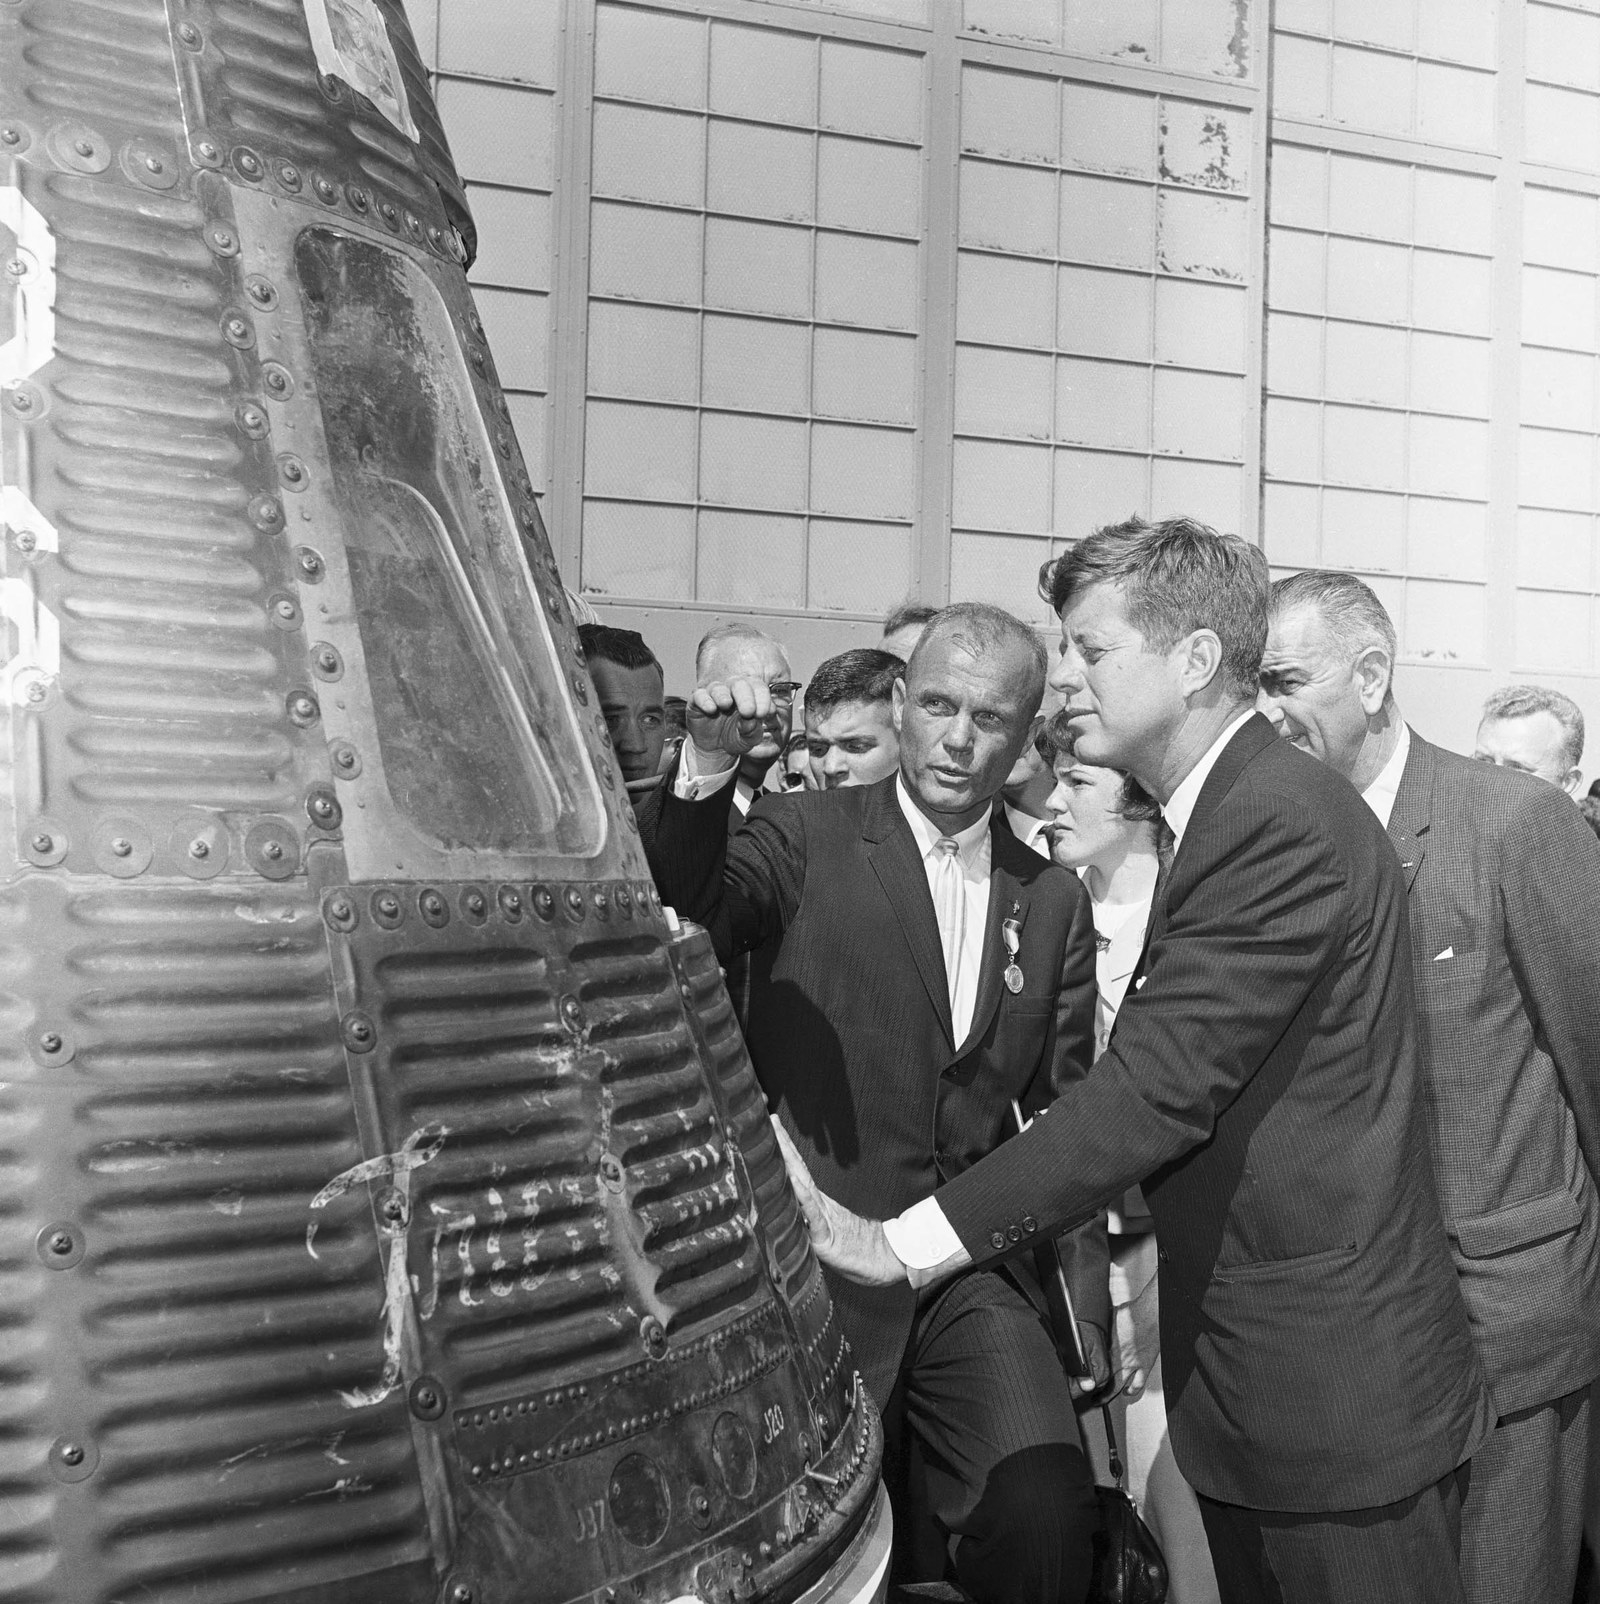 1962 John Glenn shows President Kennedy the Friendship 7, the space capsule that carried Glenn around the world three times in orbit. Glenn is wearing the medal presented to him by Kennedy. Vice President Lyndon Johnson is behind Kennedy.